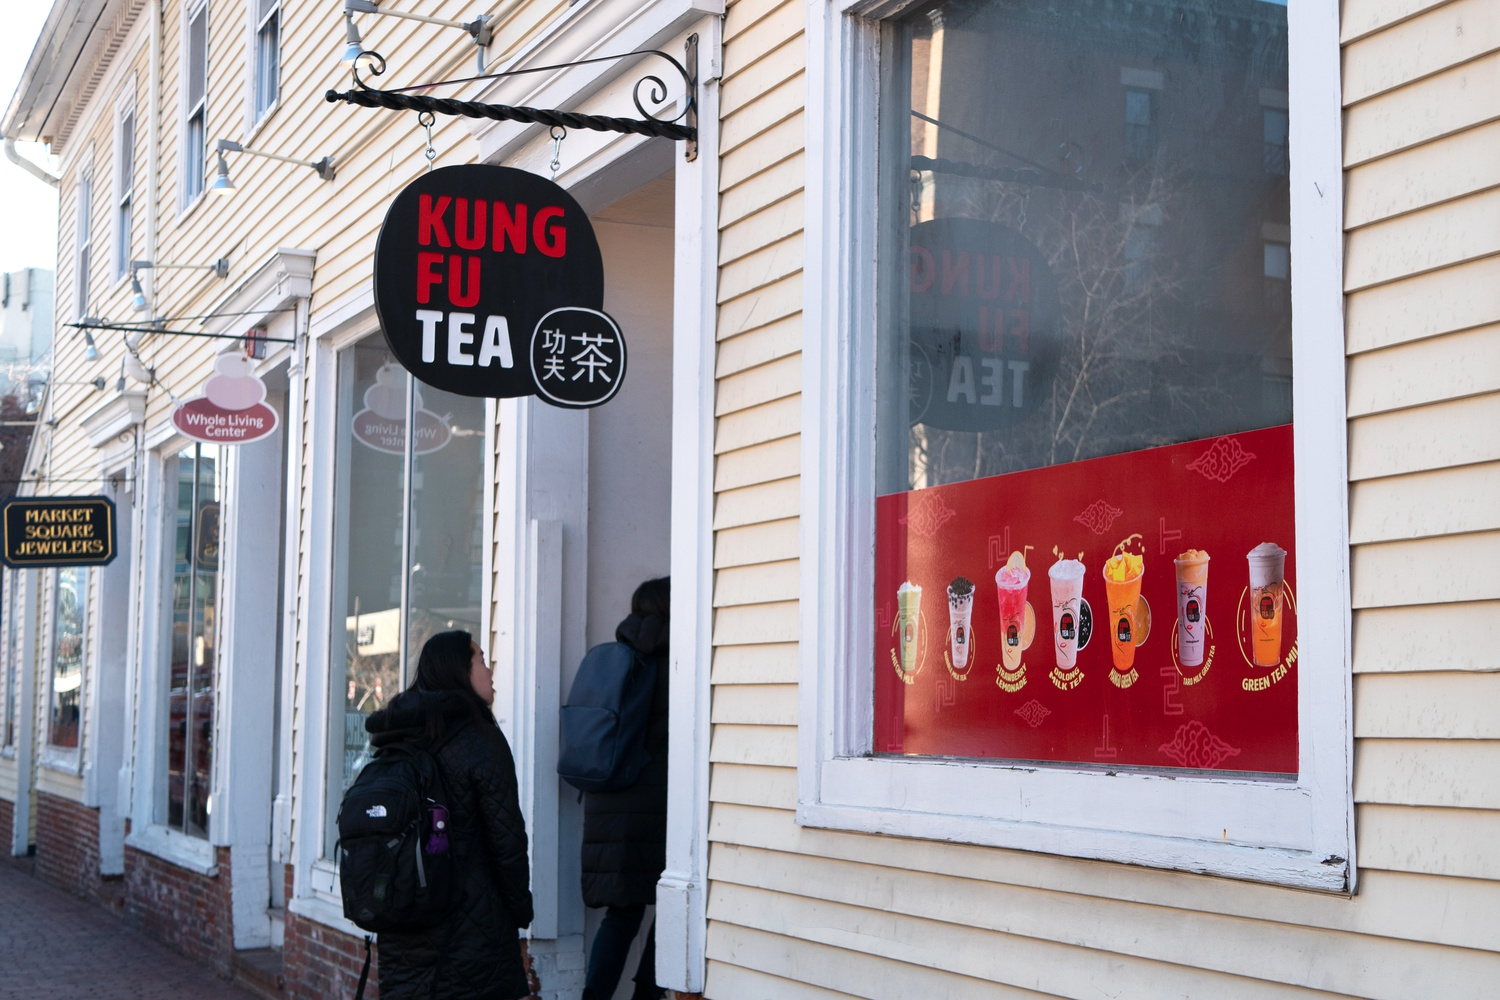 Kung Fu Tea opened this past week with deals up to 50 percent off.